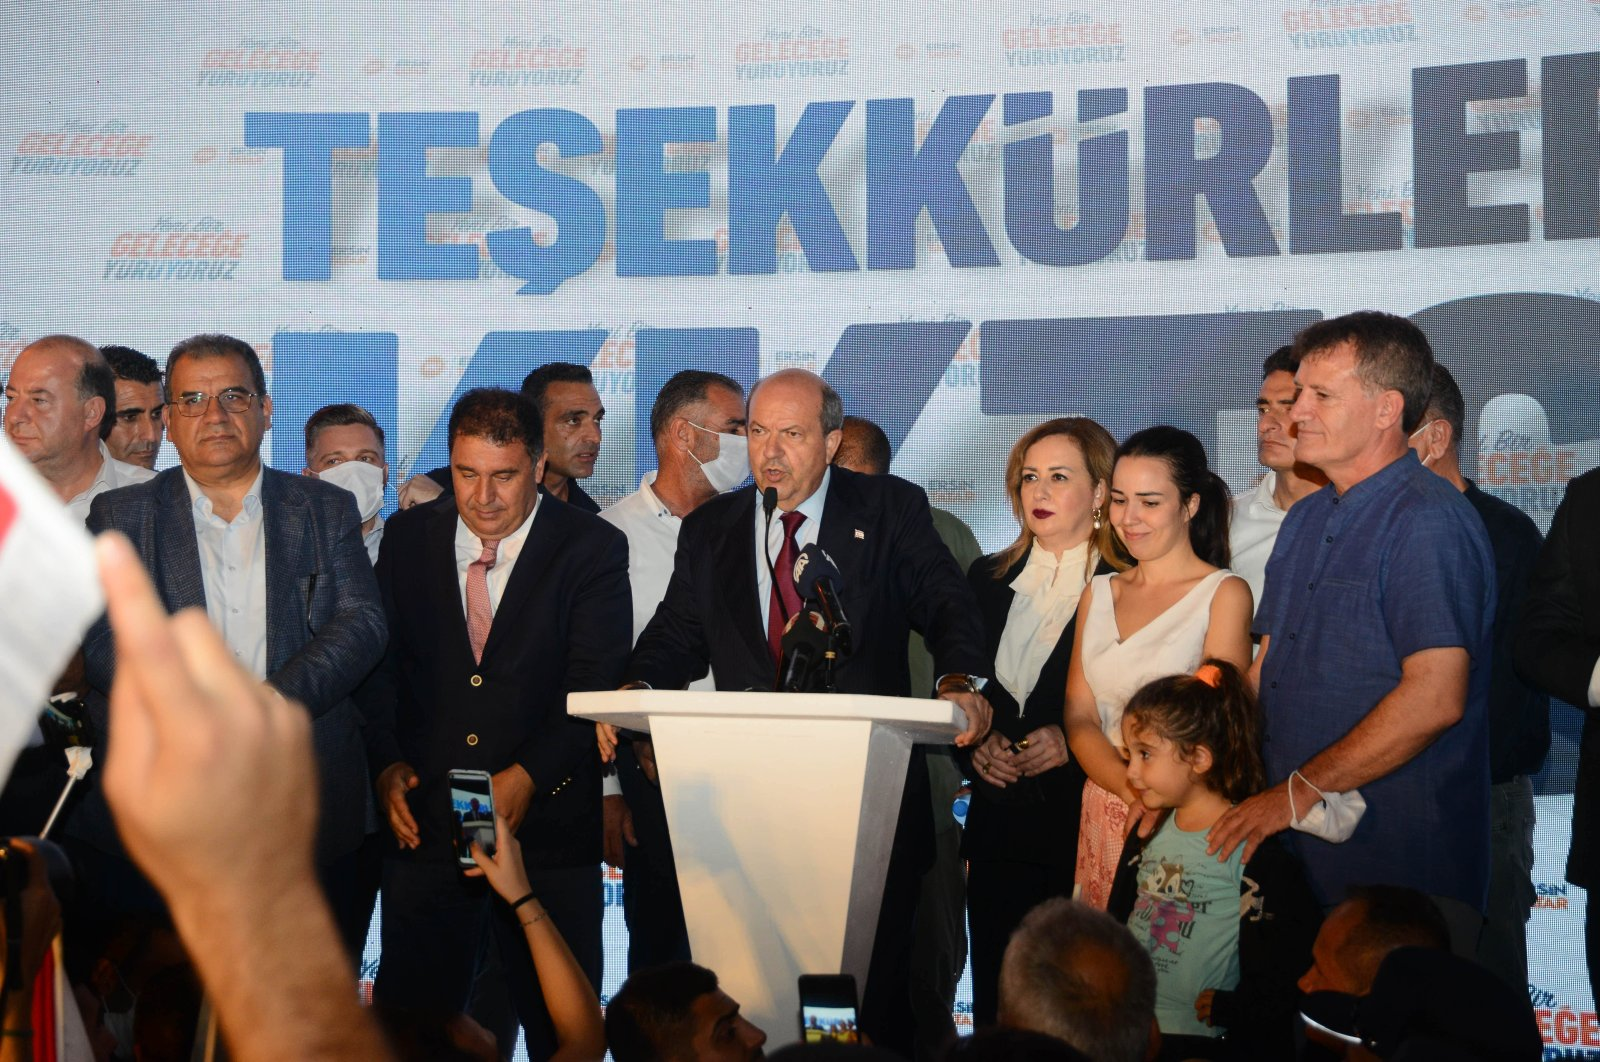 President-elect Ersin Tatar speaks after winning the second round of presidential elections in the Turkish Republic of Northern Cyprus in Lefkoşa on Oct. 18, 2020 (AA Photo)